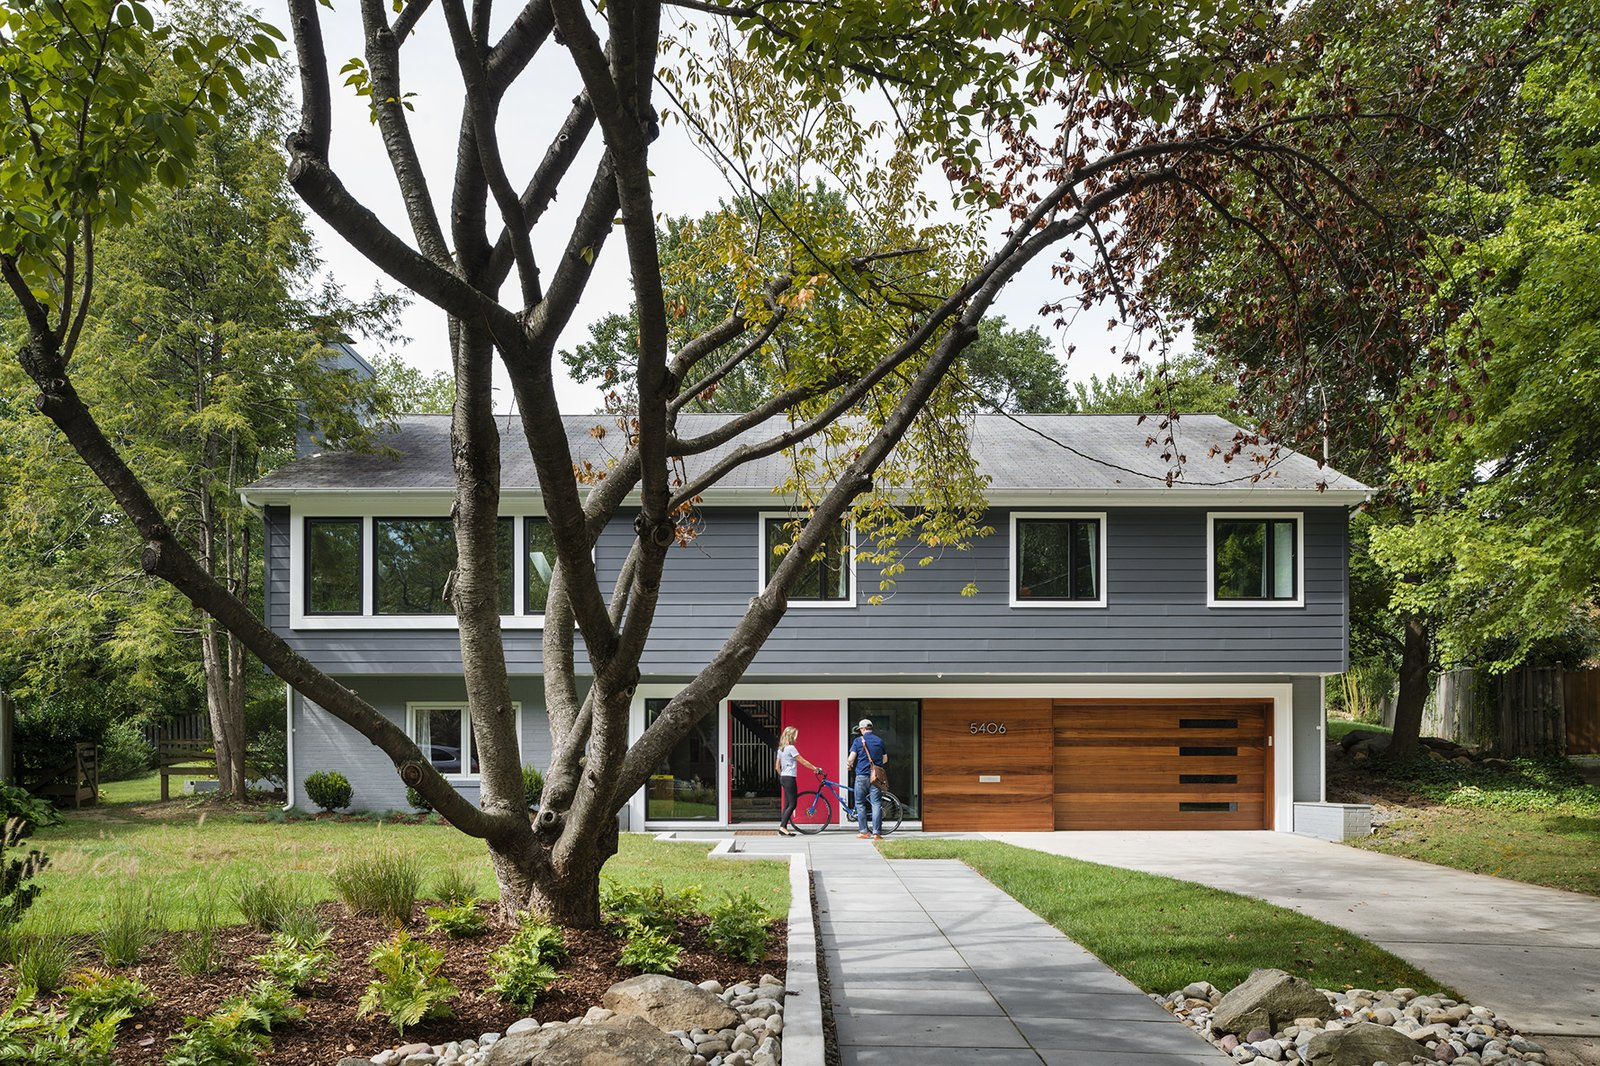 """""""We looked at so many colonials and couldn't imagine what we'd do with all the tiny rooms,"""" says Dianne Bruning, who with her husband, David Owen, enlisted architect Lou Balodemas to update a 1968 home outside of Chevy Chase, Maryland. Tagged: Front Yard, Trees, Shrubs, Grass, Hardscapes, Gardens, Walkways, Exterior, House, and Wood Siding Material.  Photo 2 of 8 in Minor Adjustments"""